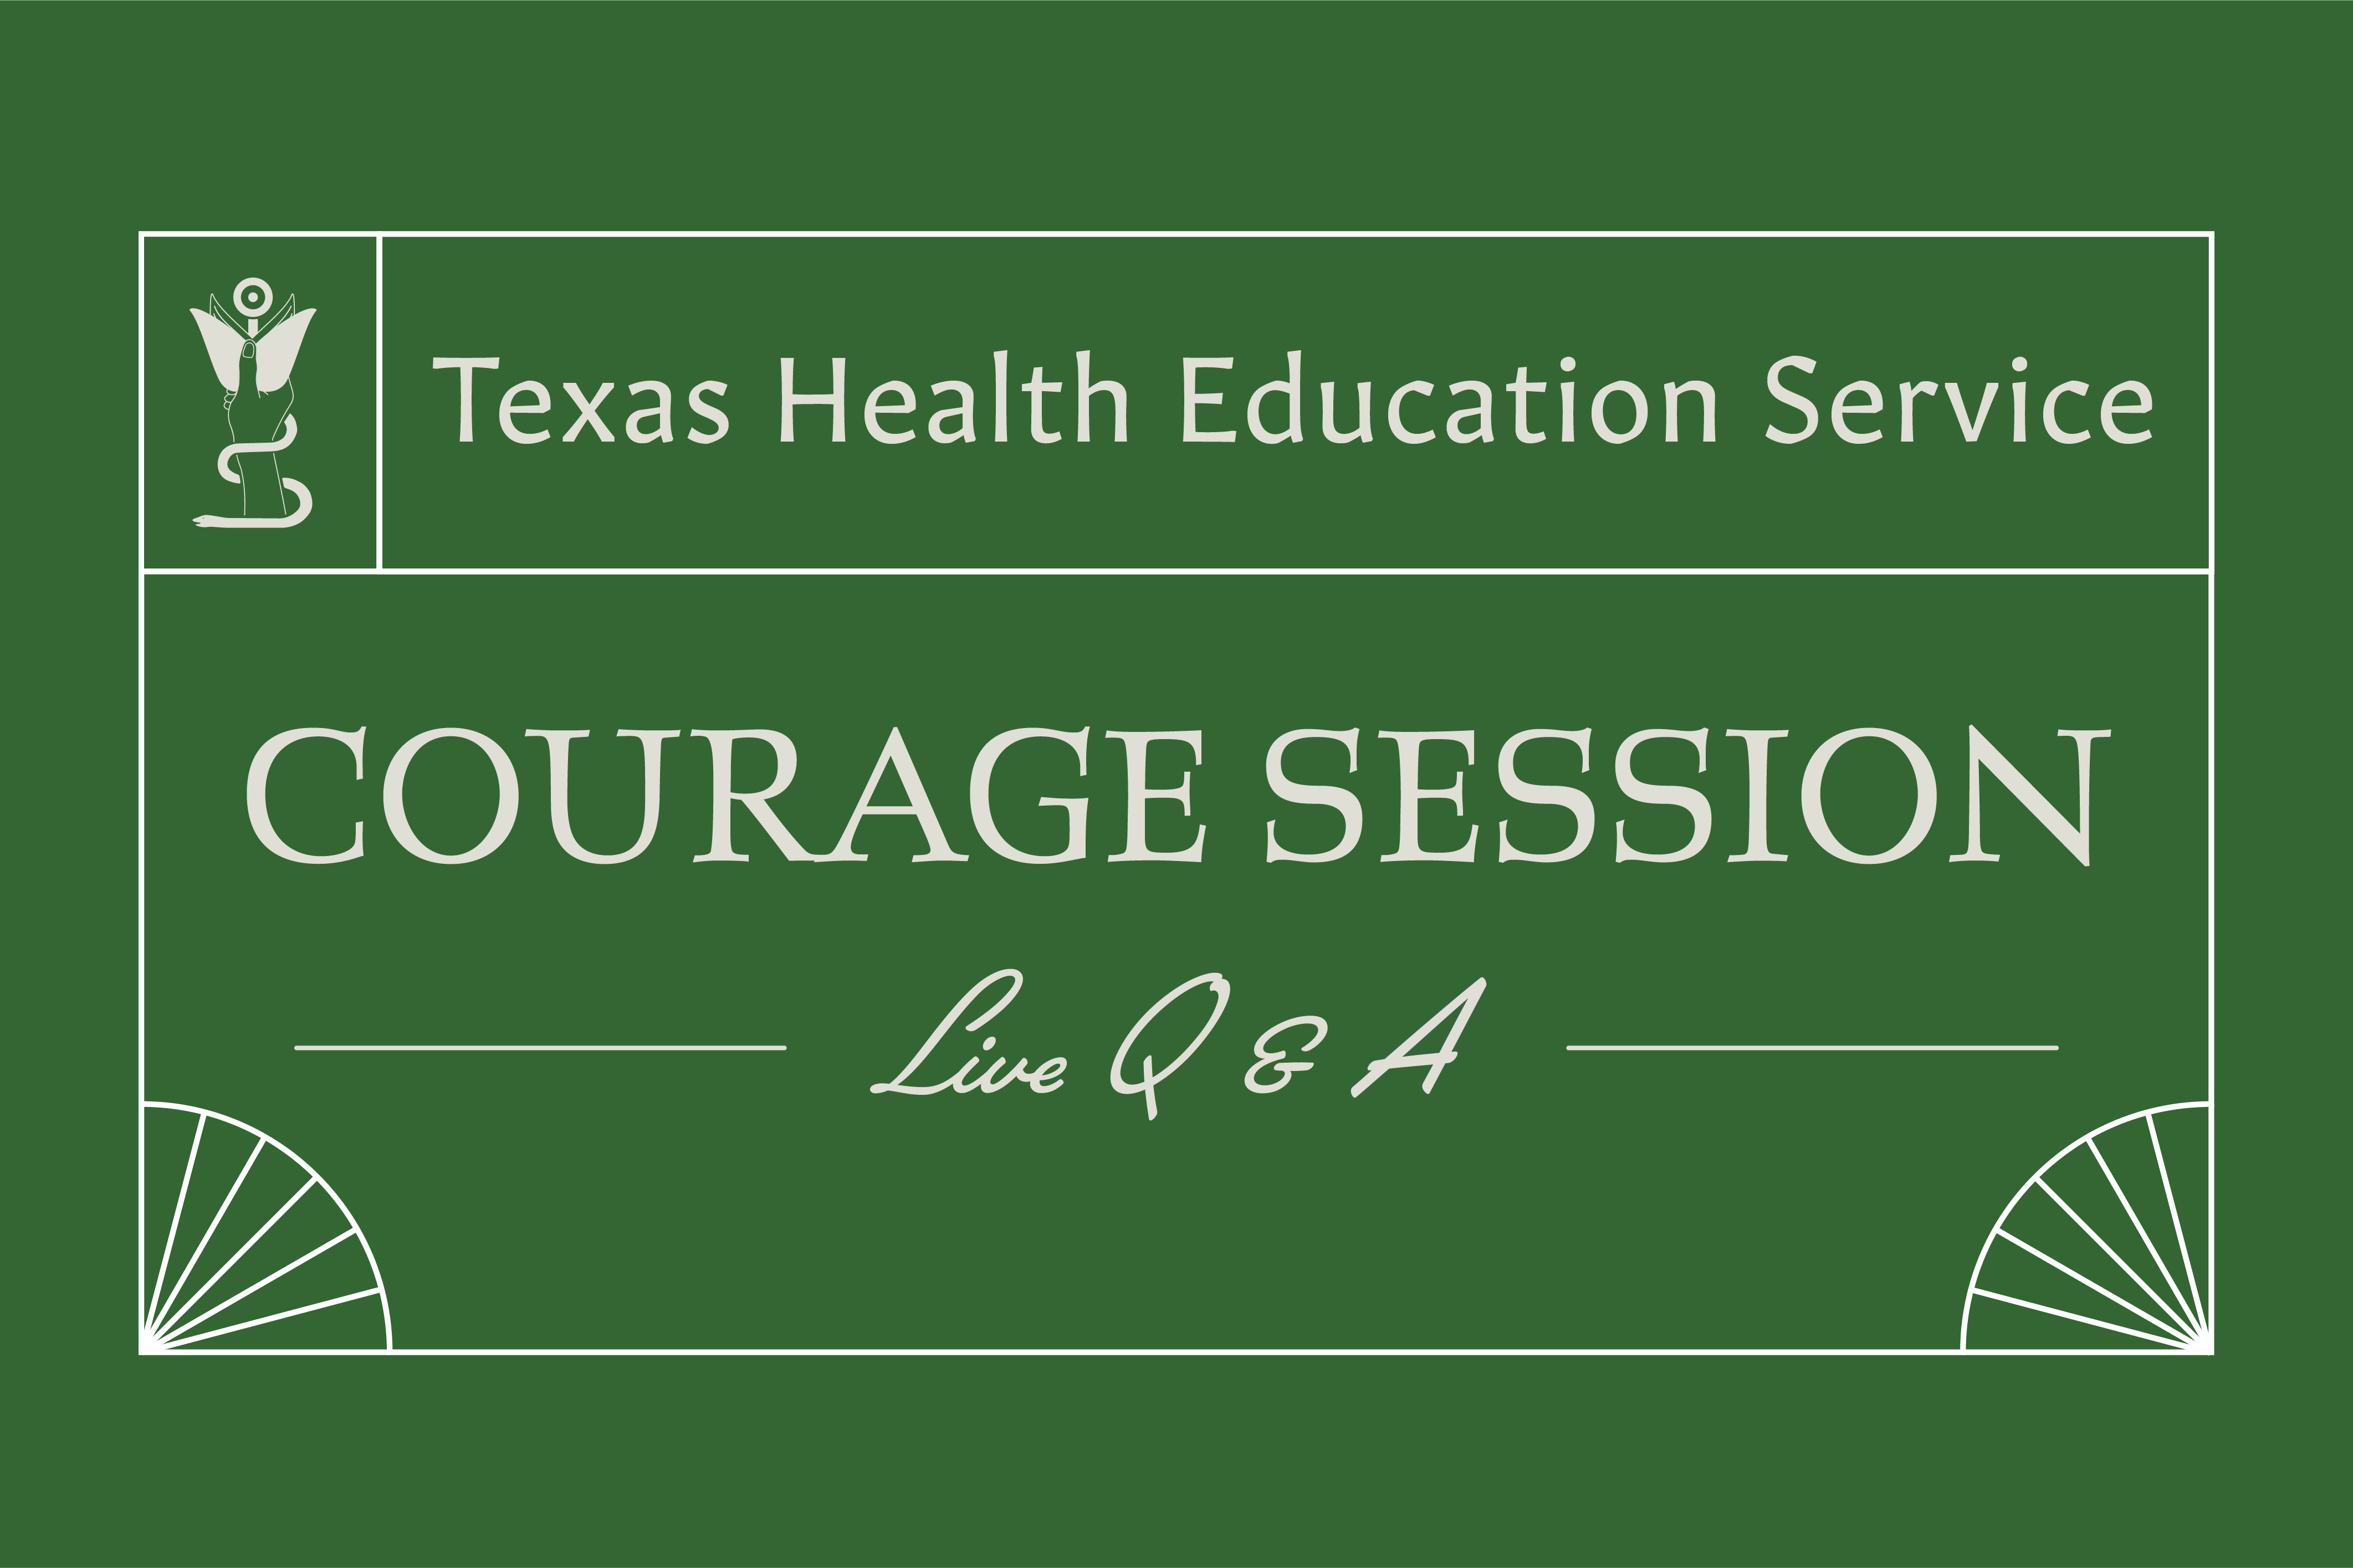 Courage Session Logo